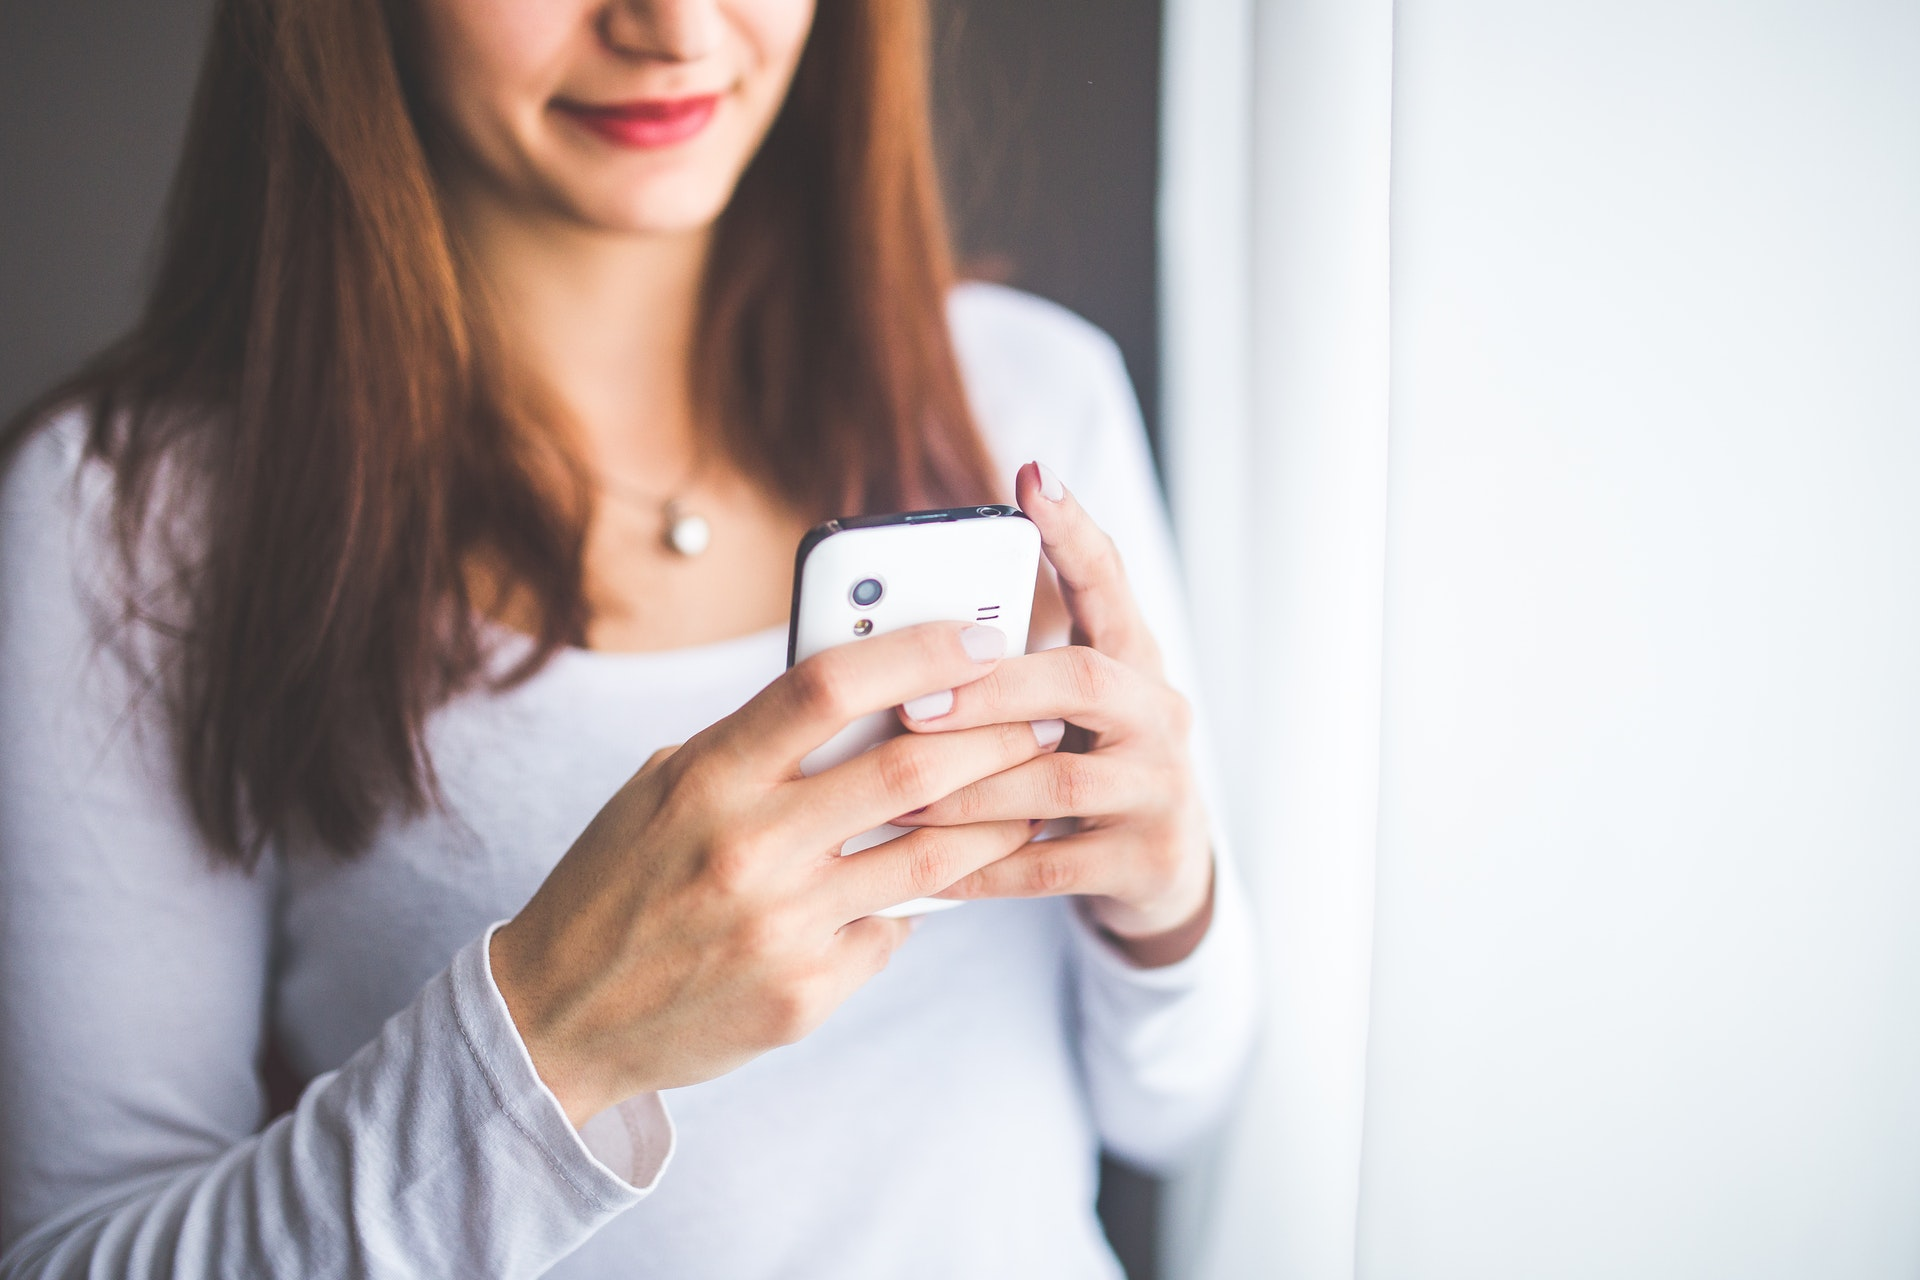 a woman in white shirt is using mobile phone for texting